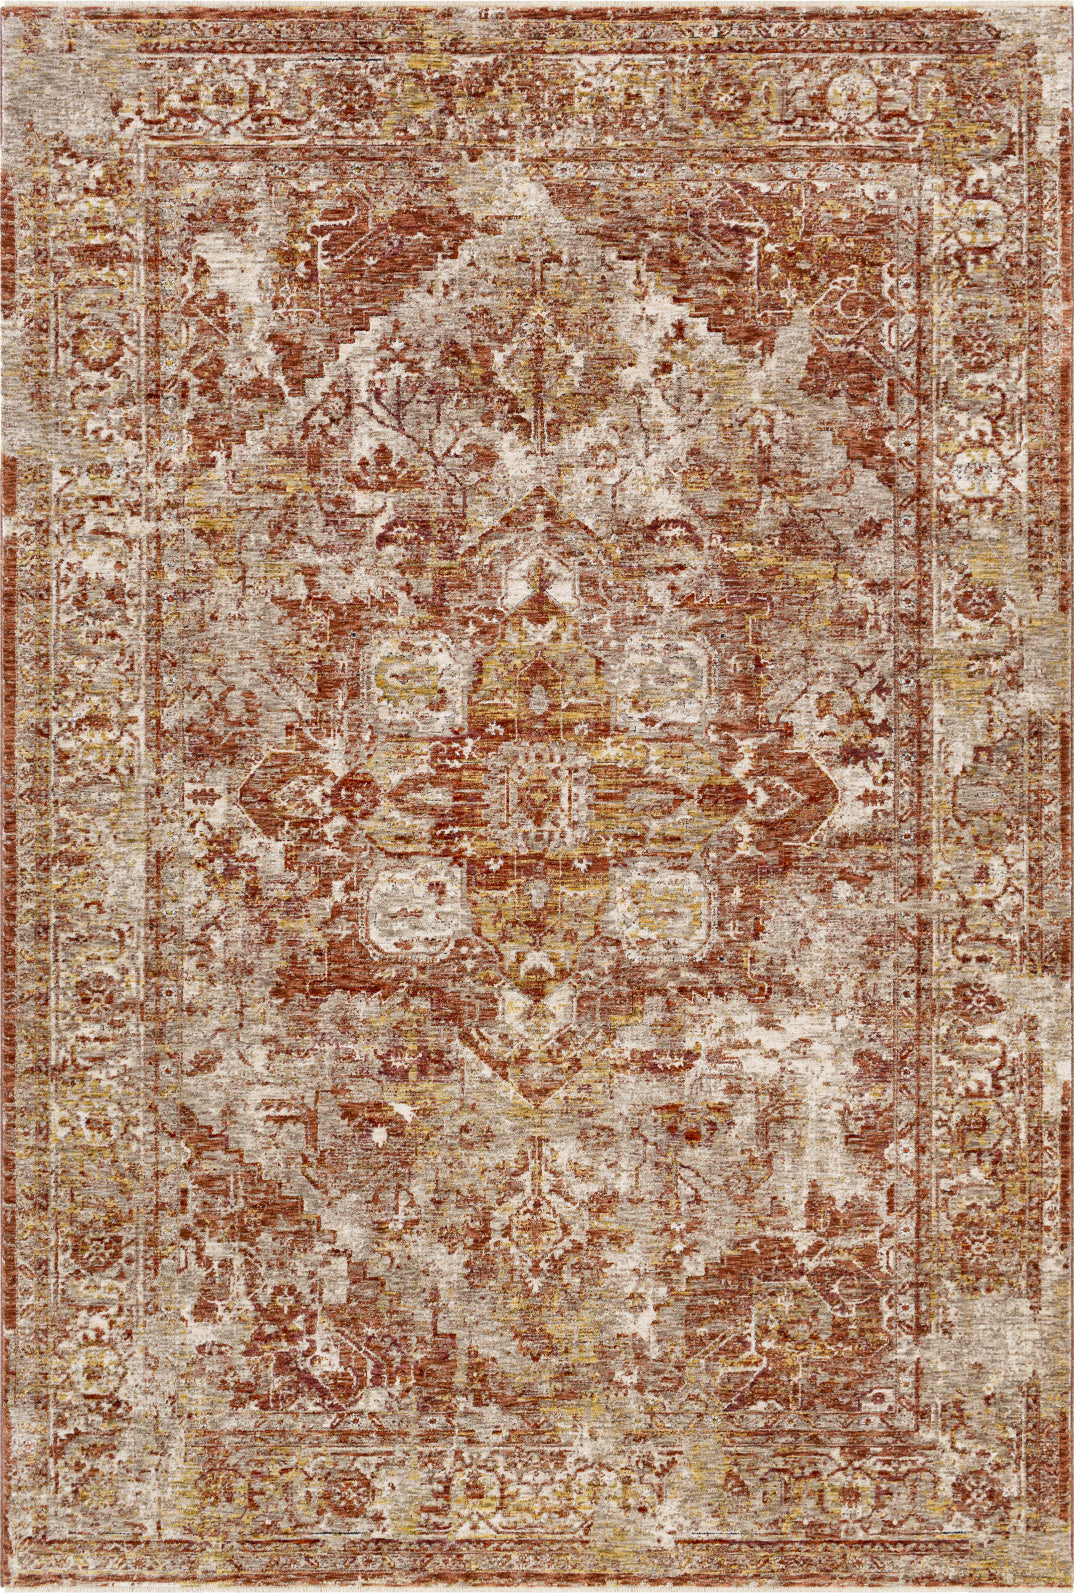 Surya Mirabel MBE-2304 Area Rug by Artistic Weavers main image